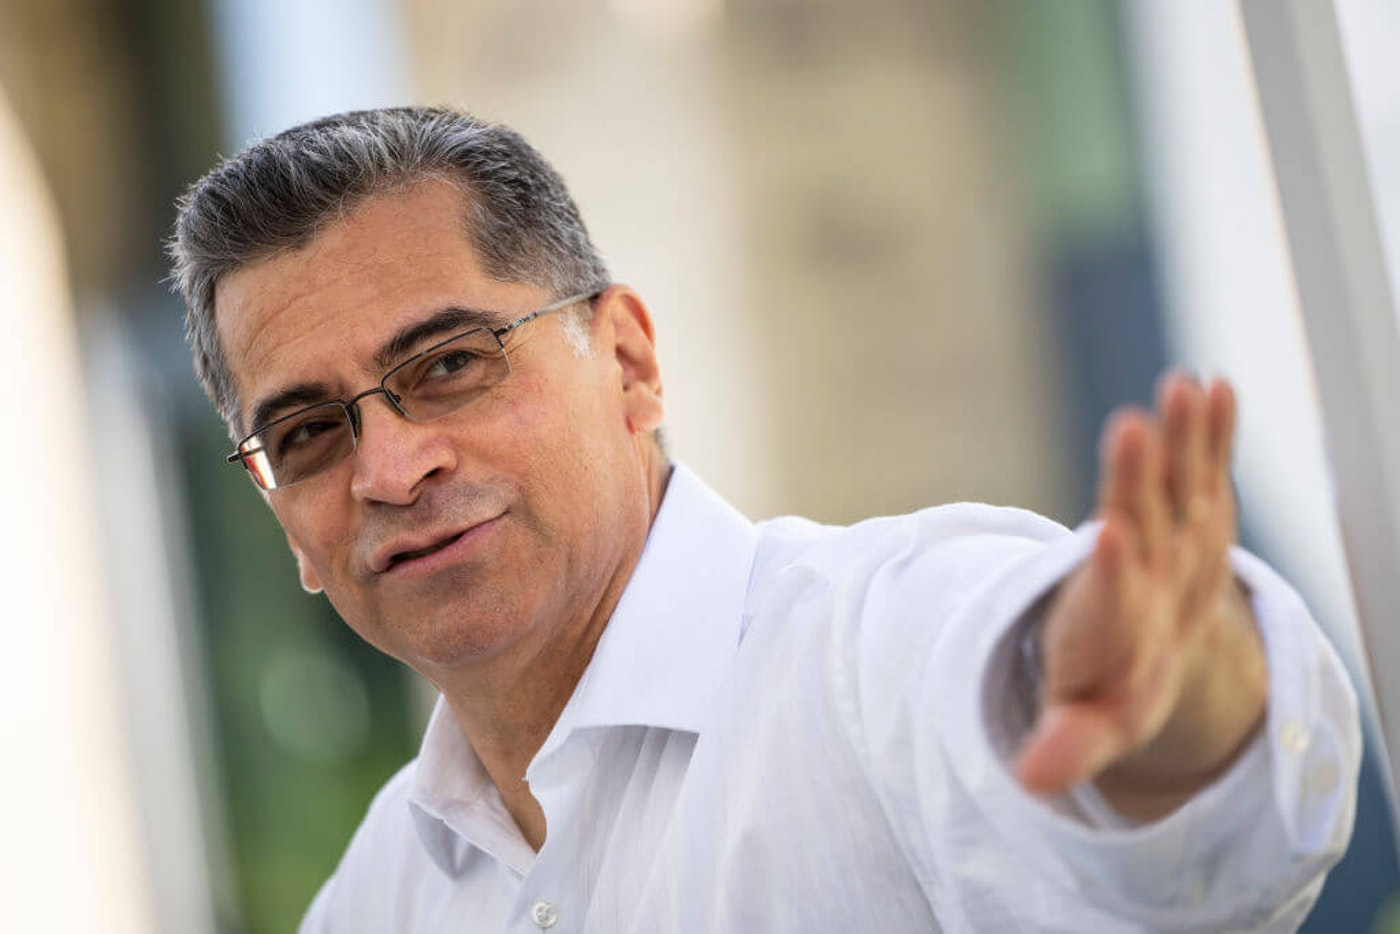 Health and Human Services Secretary Xavier Becerra in Washington, D.C., in June. Becerra met w/ longtime US Rep. Alma Adams this week in Charlotte to talk health care post-pandemic.  (Photo by Drew Angerer/Getty Images)